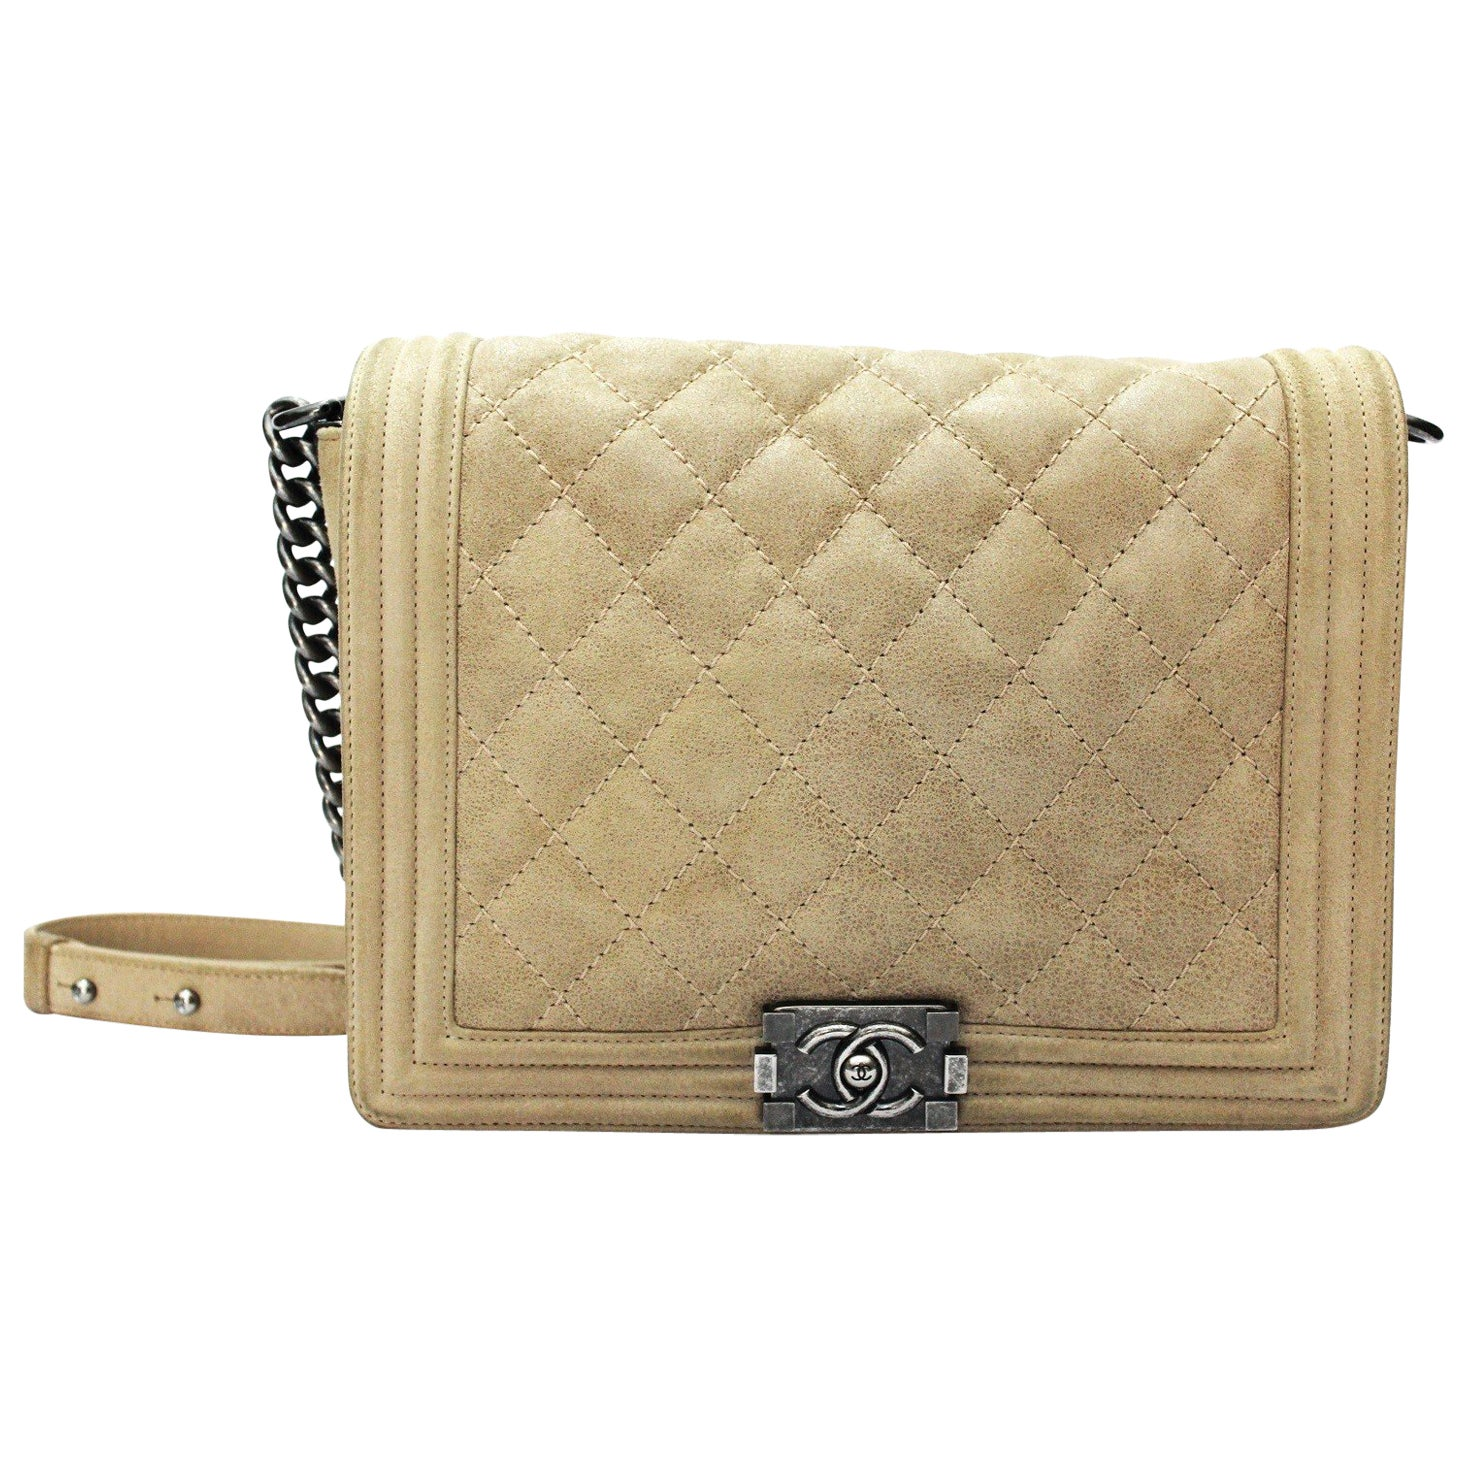 2013-2014 Chanel Beige Suede Large Boy Bag